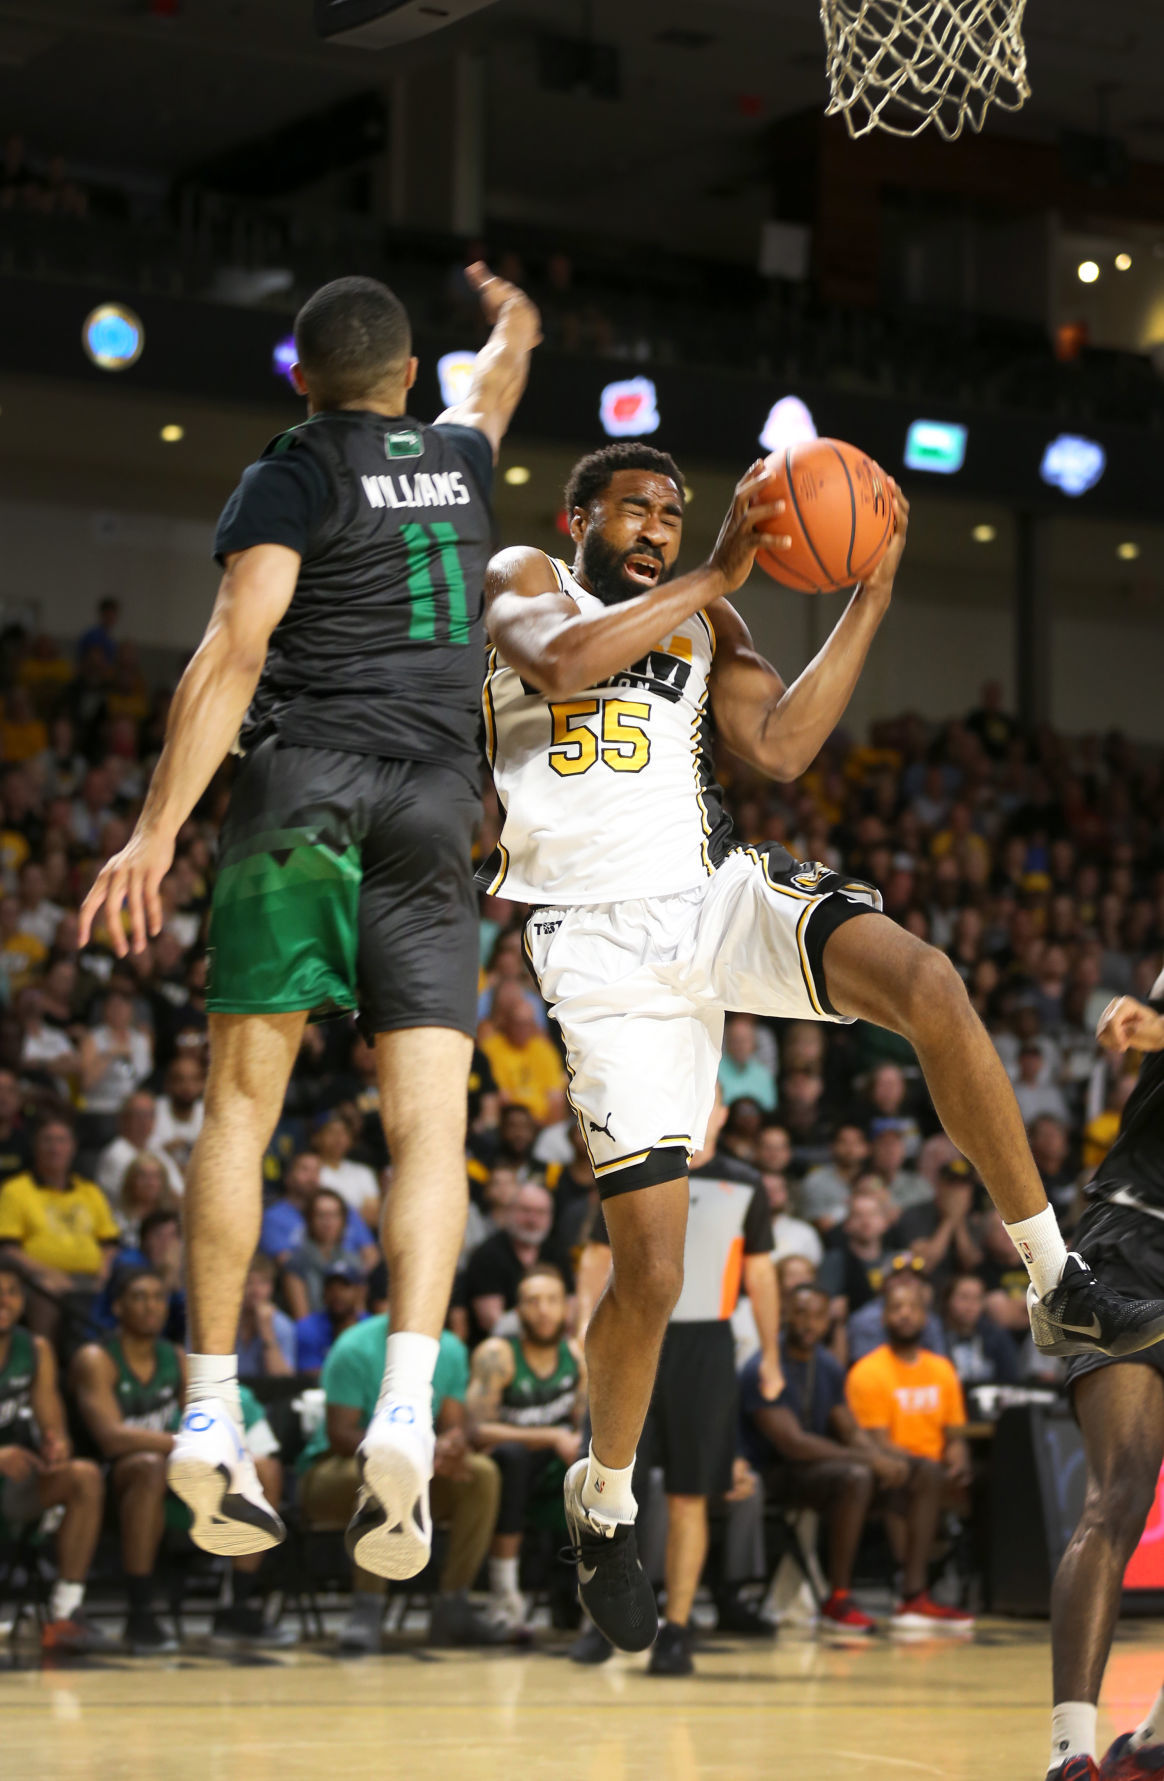 Ram Nation Nation Rolls To Win In Tbt In Front Of Electric Crowd